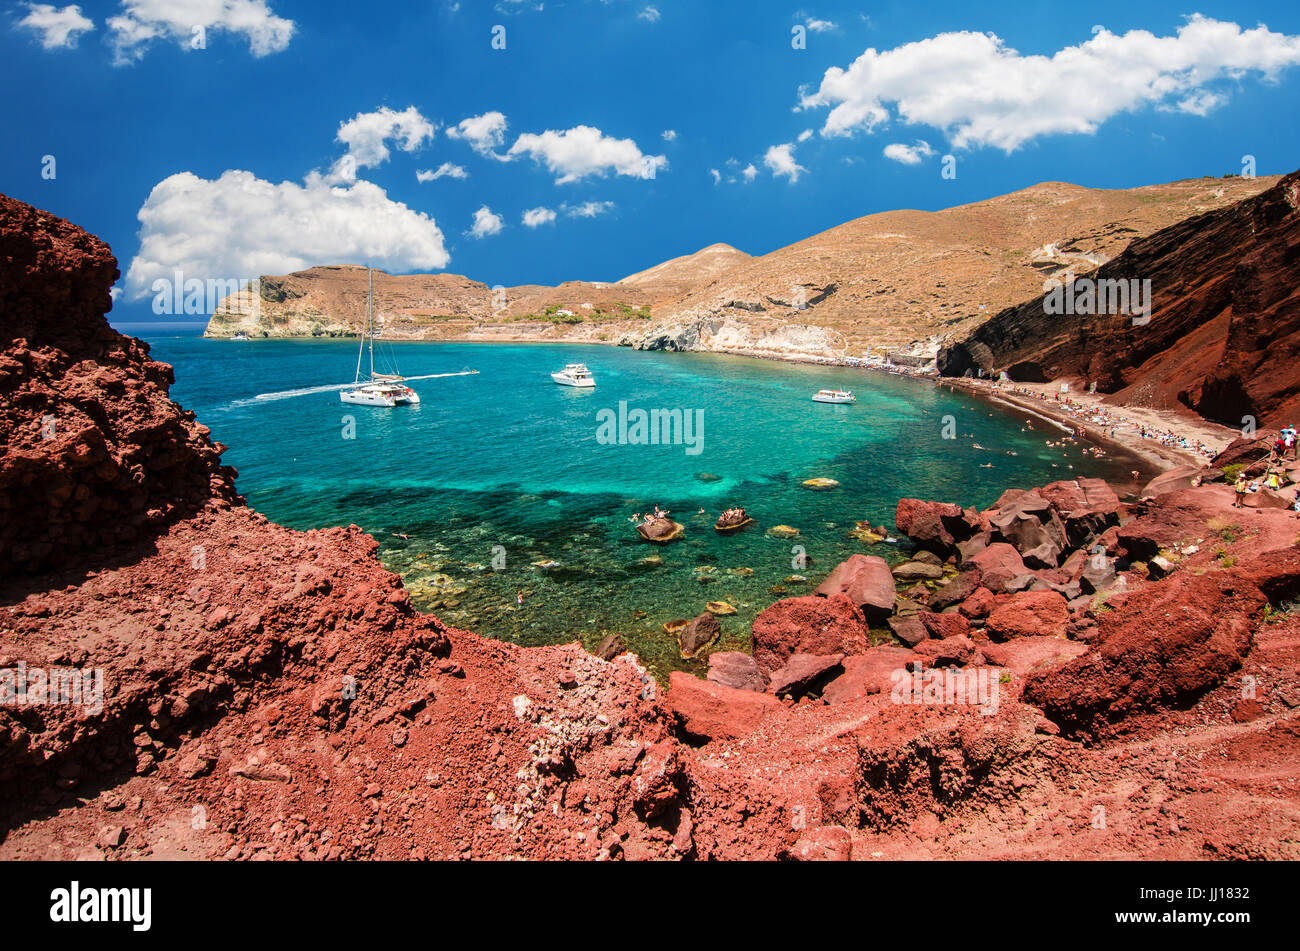 Red Beach Santorini Cycladic Islands Greece Beautiful Summer Landscape With One Of The Most Famous Beaches In World